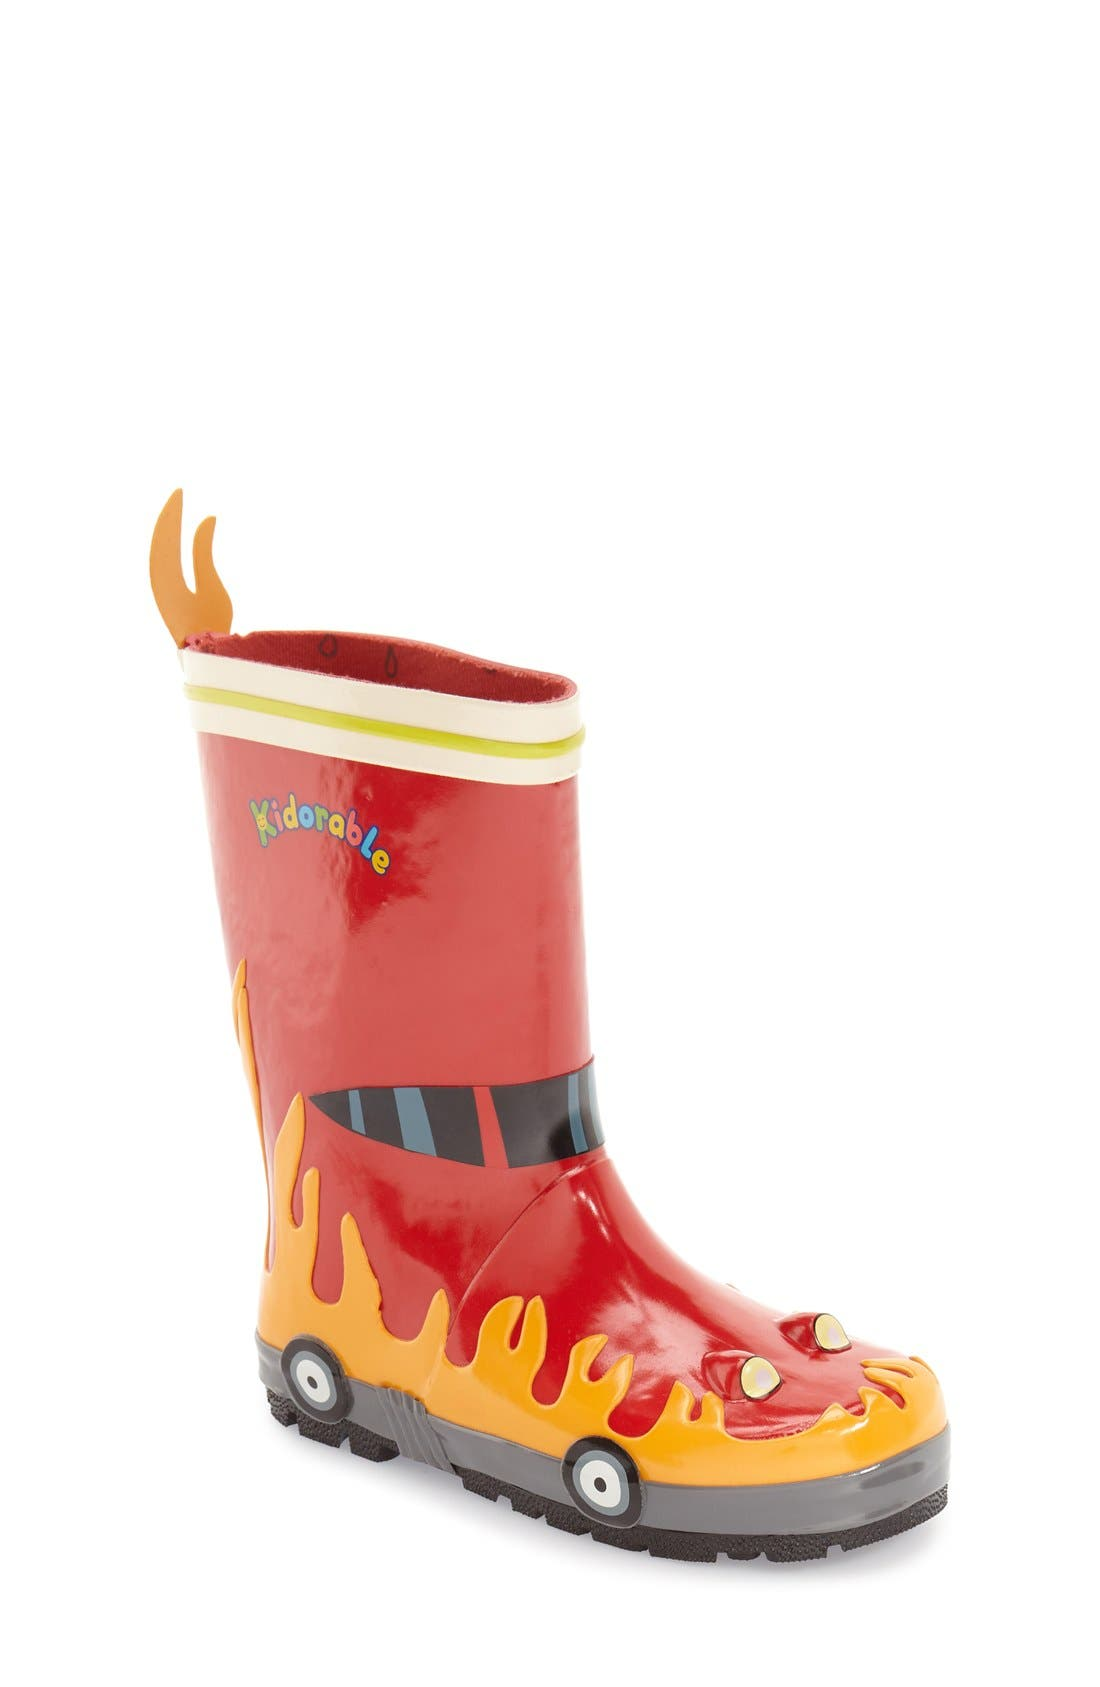 Alternate Image 1 Selected - Kidorable 'Fireman' Waterproof Rain Boot (Walker, Toddler & Little Kid)